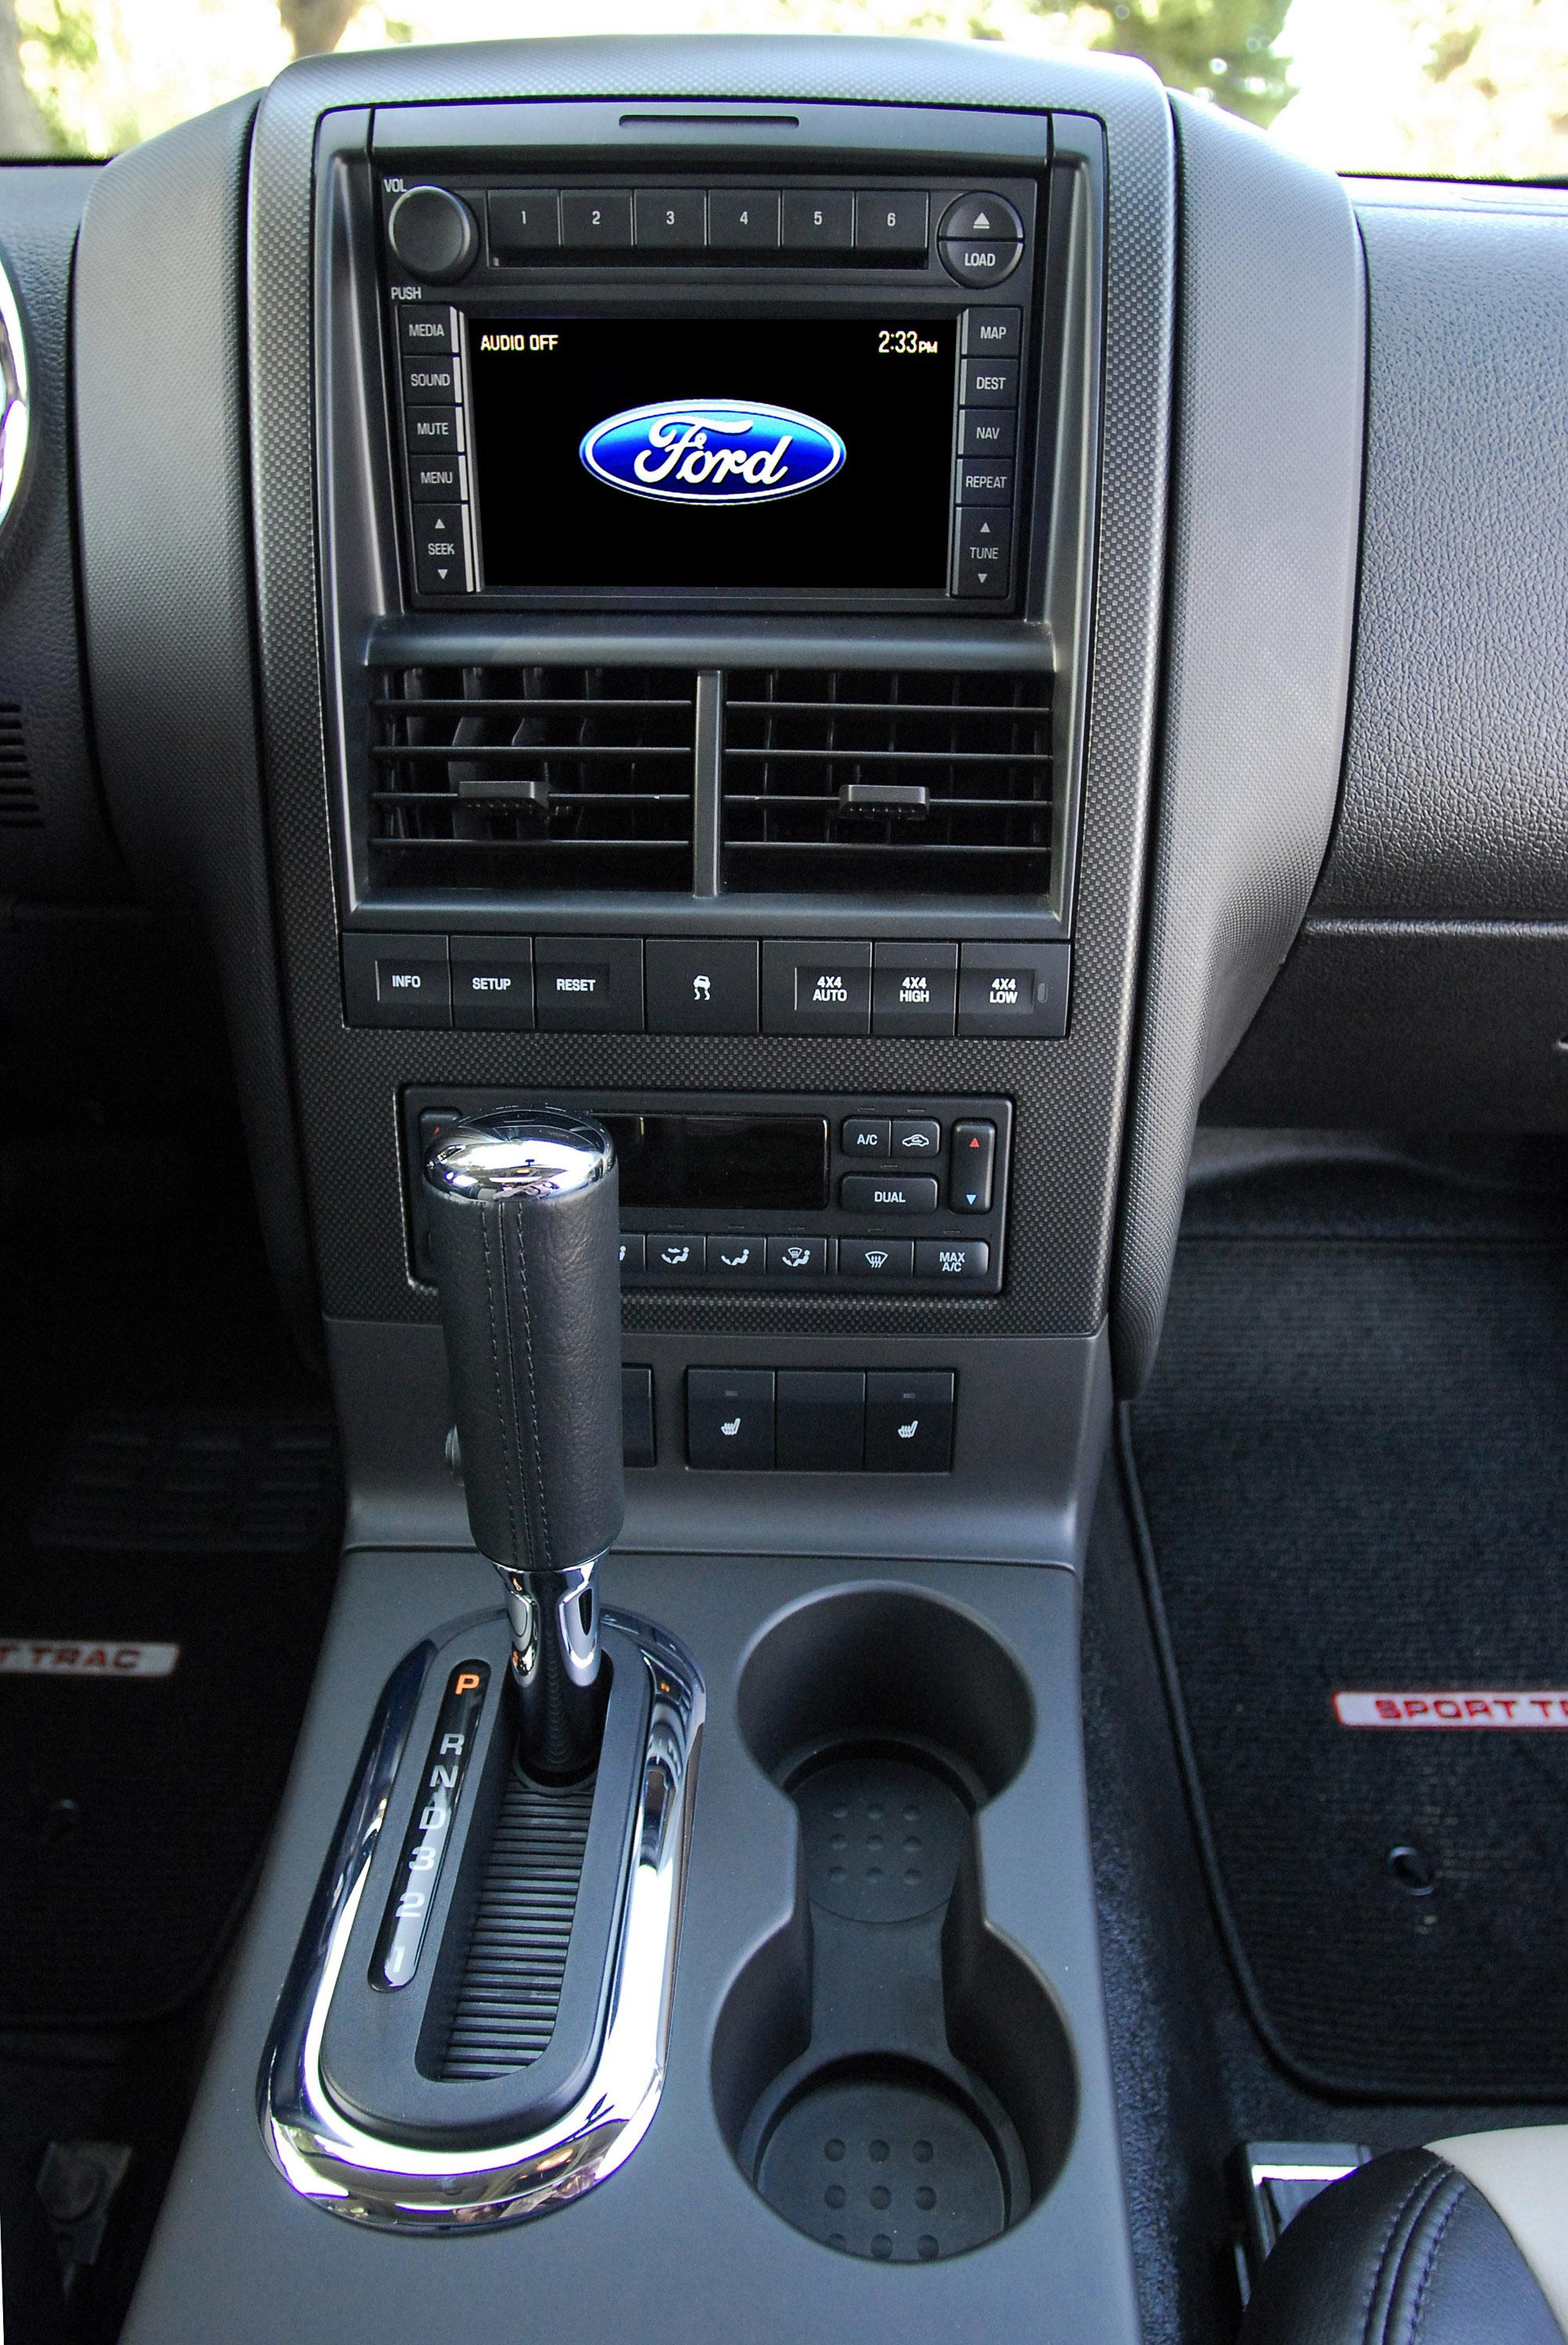 2007 Ford Explorer Sport Trac | Top Speed